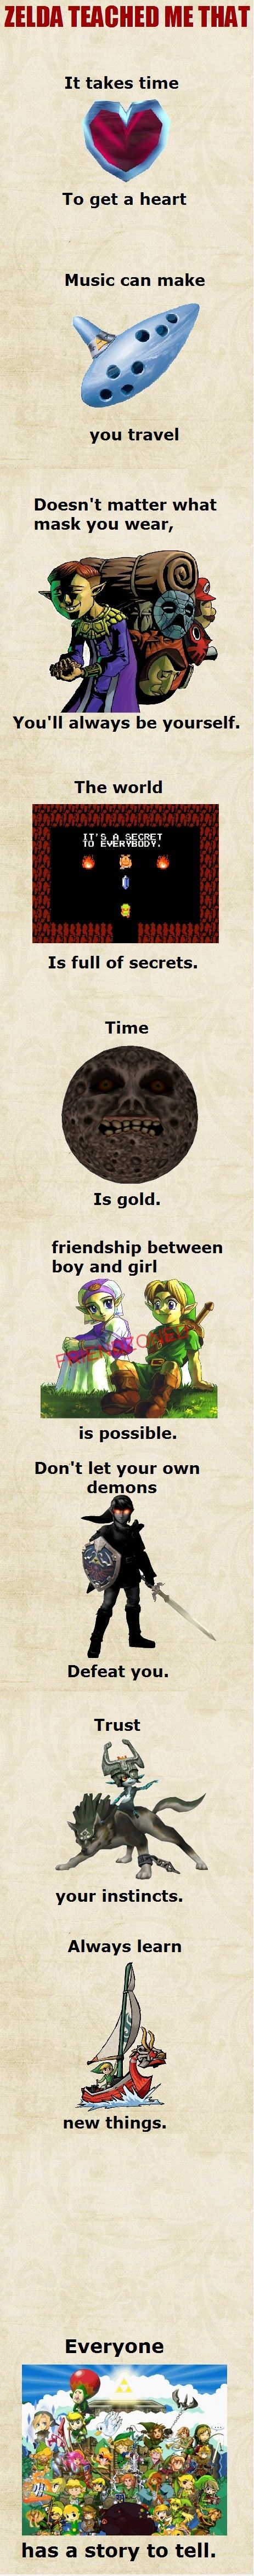 """What The Legend of Zelda taught me..even though the title says it """"teached me"""" lol"""